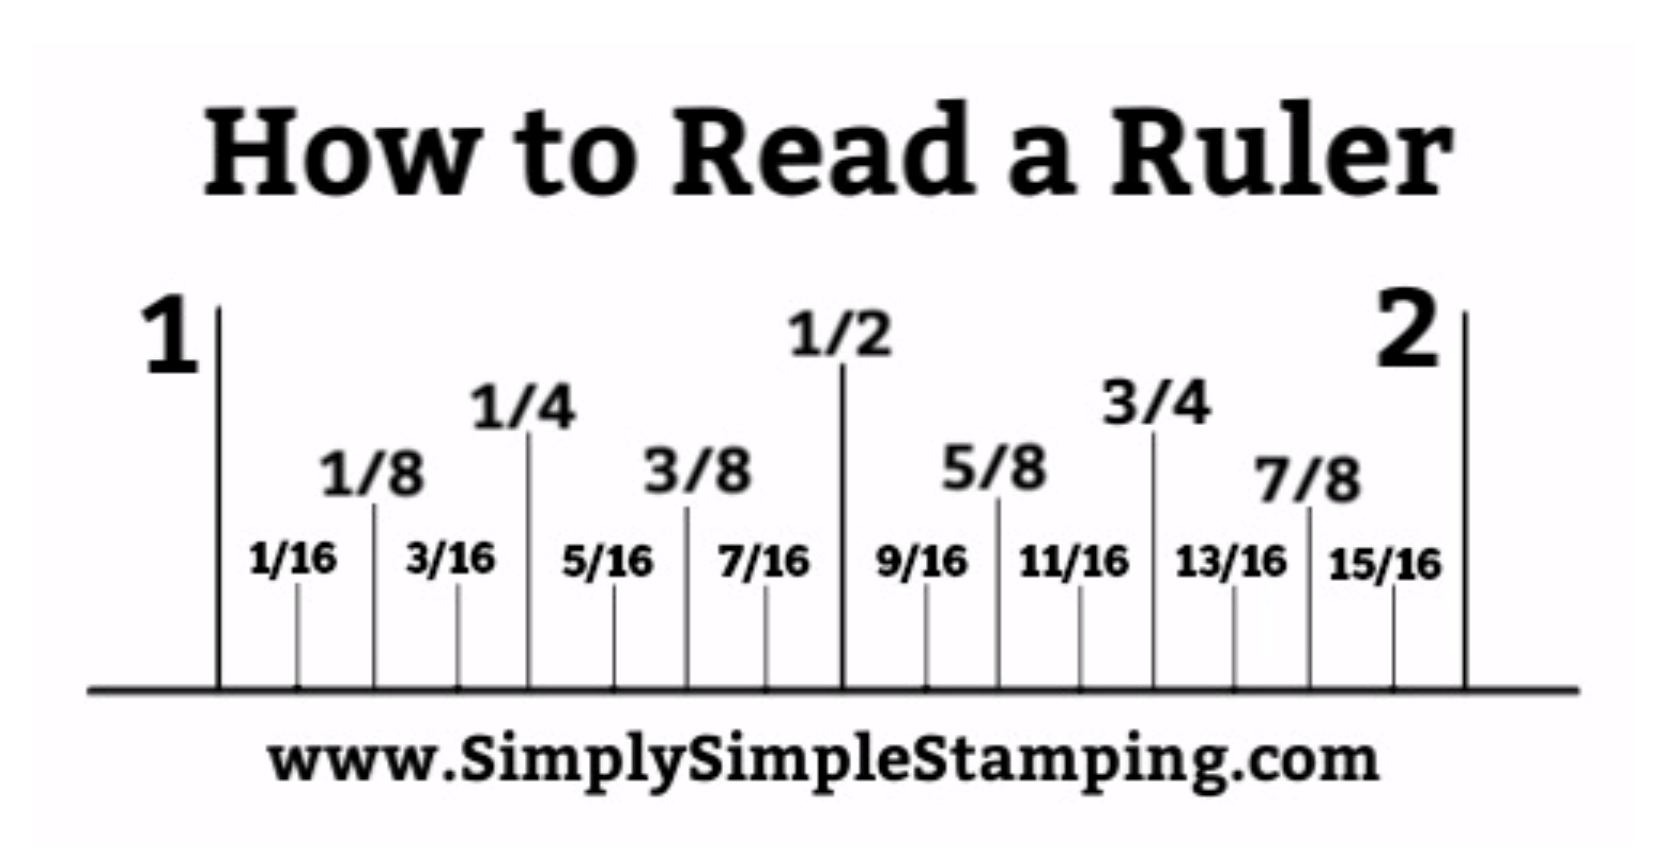 How-to-Read-a-Ruler-Free-Download-Template